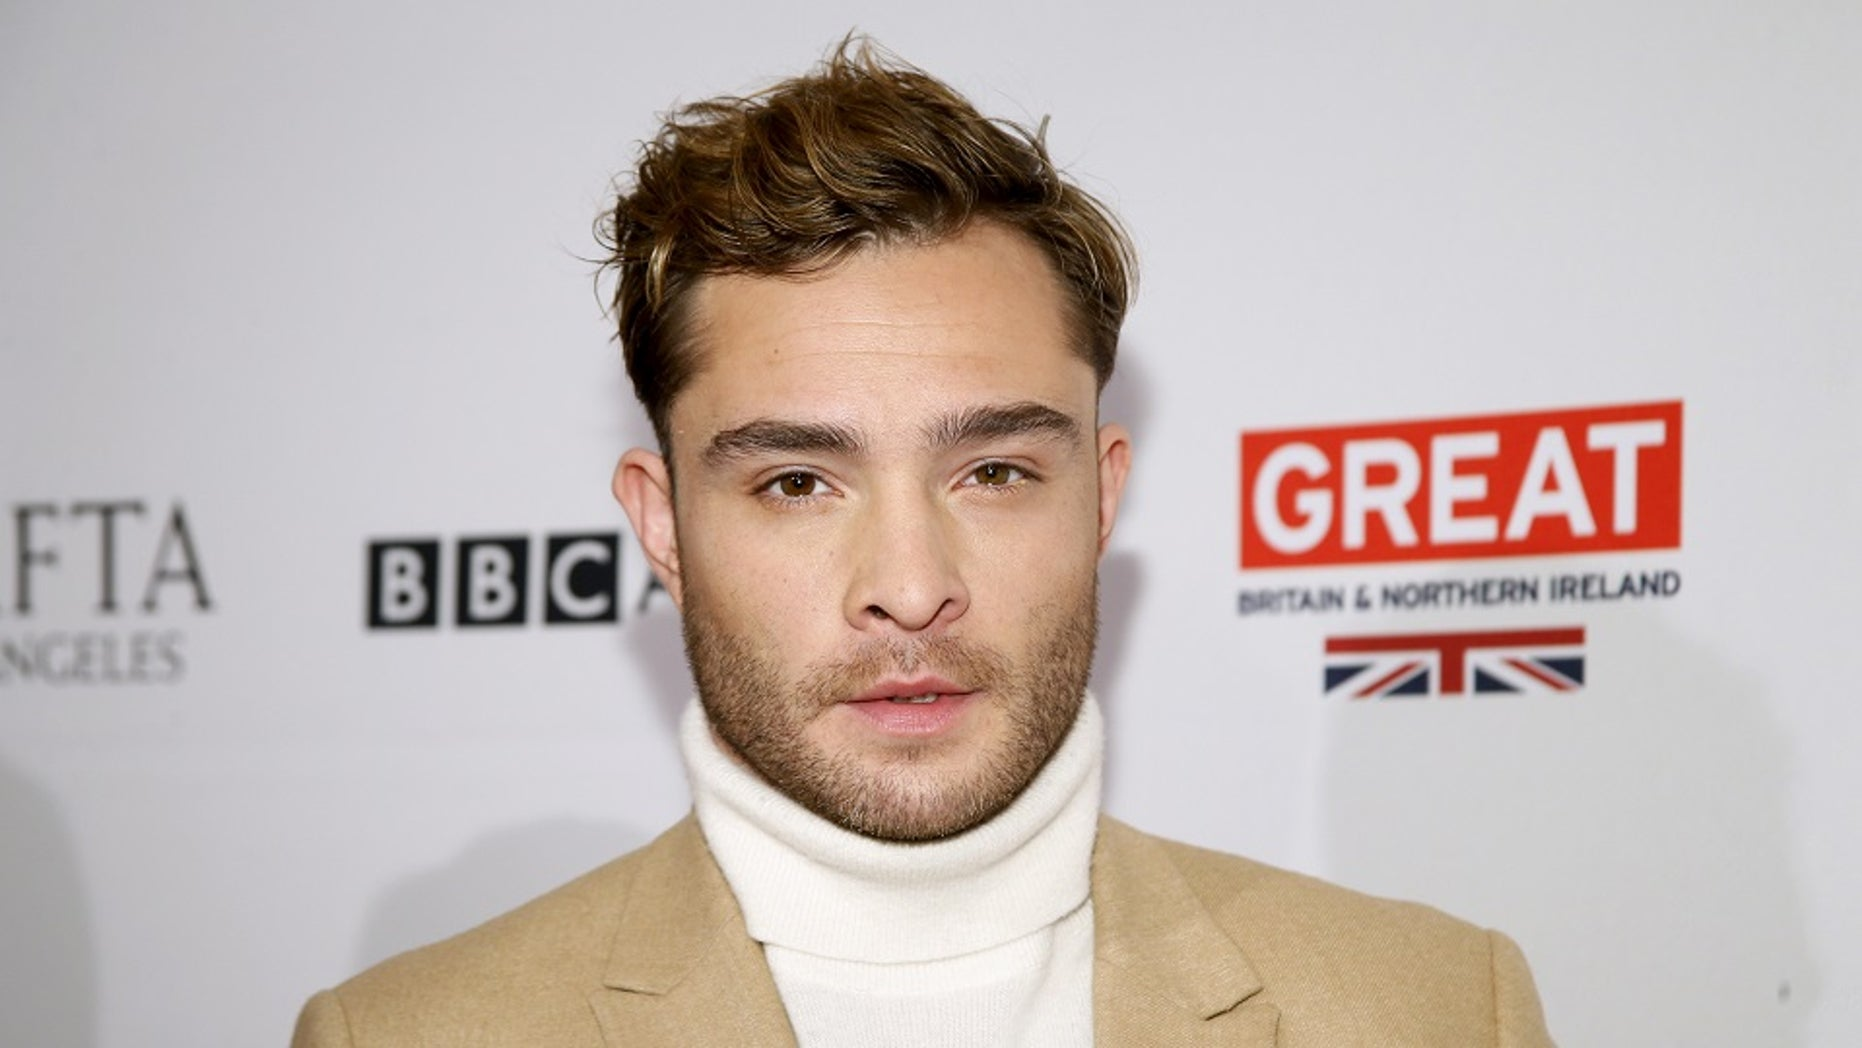 """Gossip Girl"" star Ed Westwick denied the rape allegations made against him by actress Kristina Cohen."